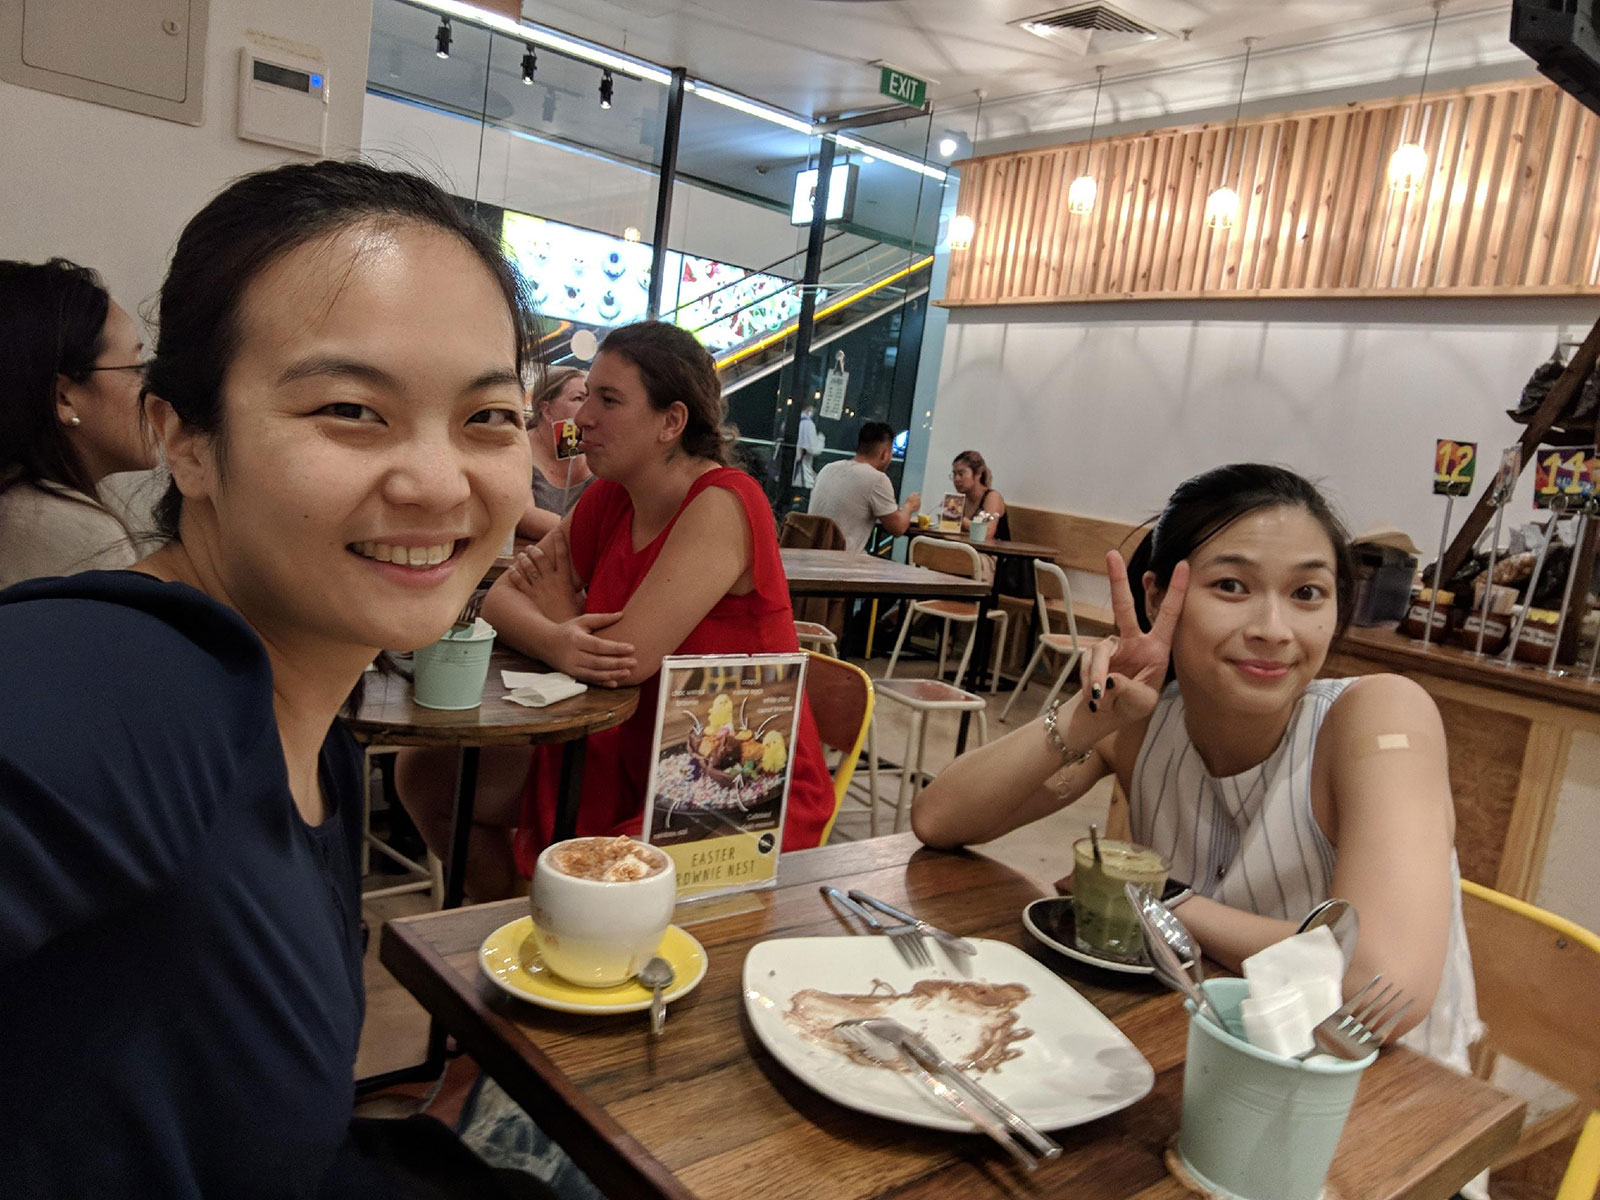 Two girls facing the camera, smiling. They are sitting at a table with two cups of hot drinks. The one further away from the camera is making a peace/victory sign with two fingers. In the middle of the table is a white plate with some chocolate sauce on it, and two sets of cutlery. They are in a cafe setting.